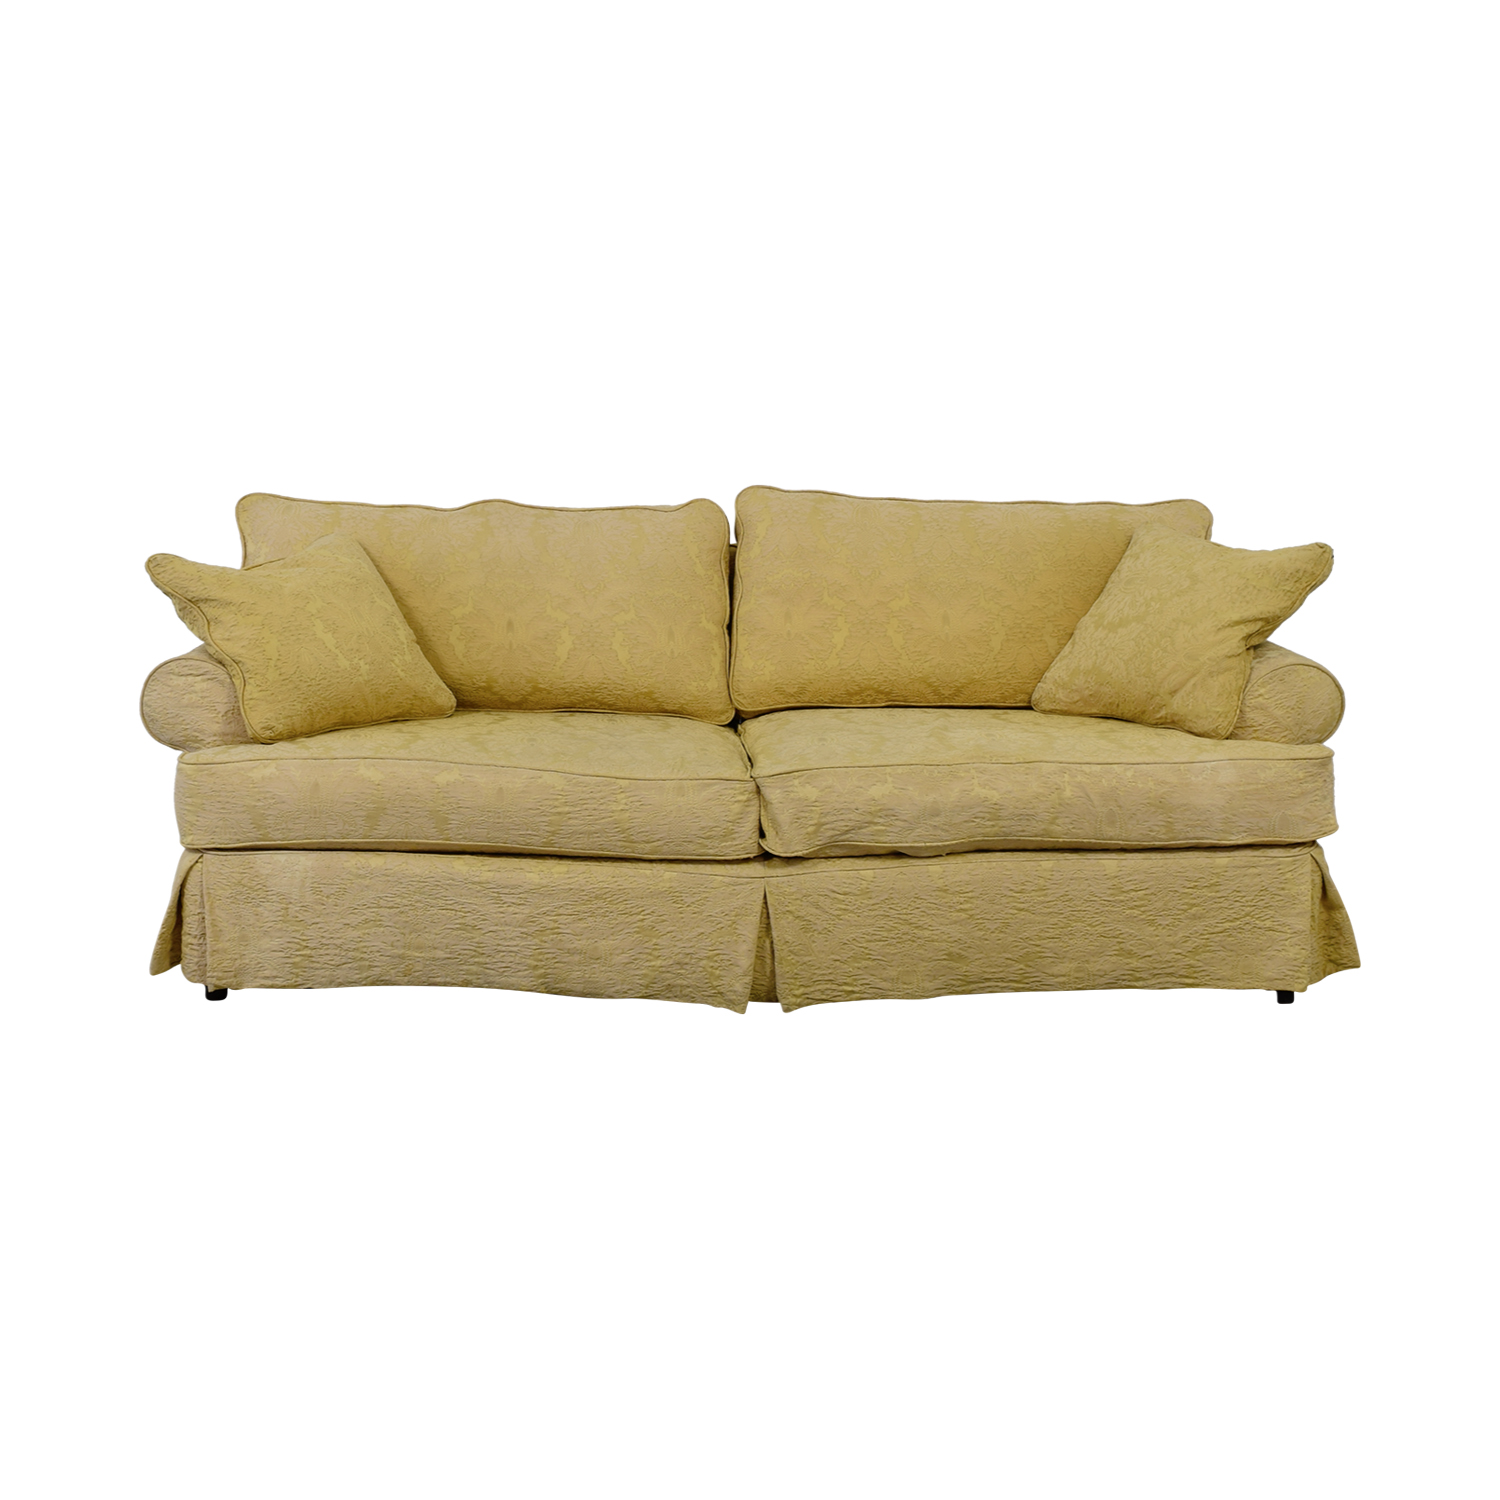 shop  Custom Gold Jacquard Slipcover Sofa online